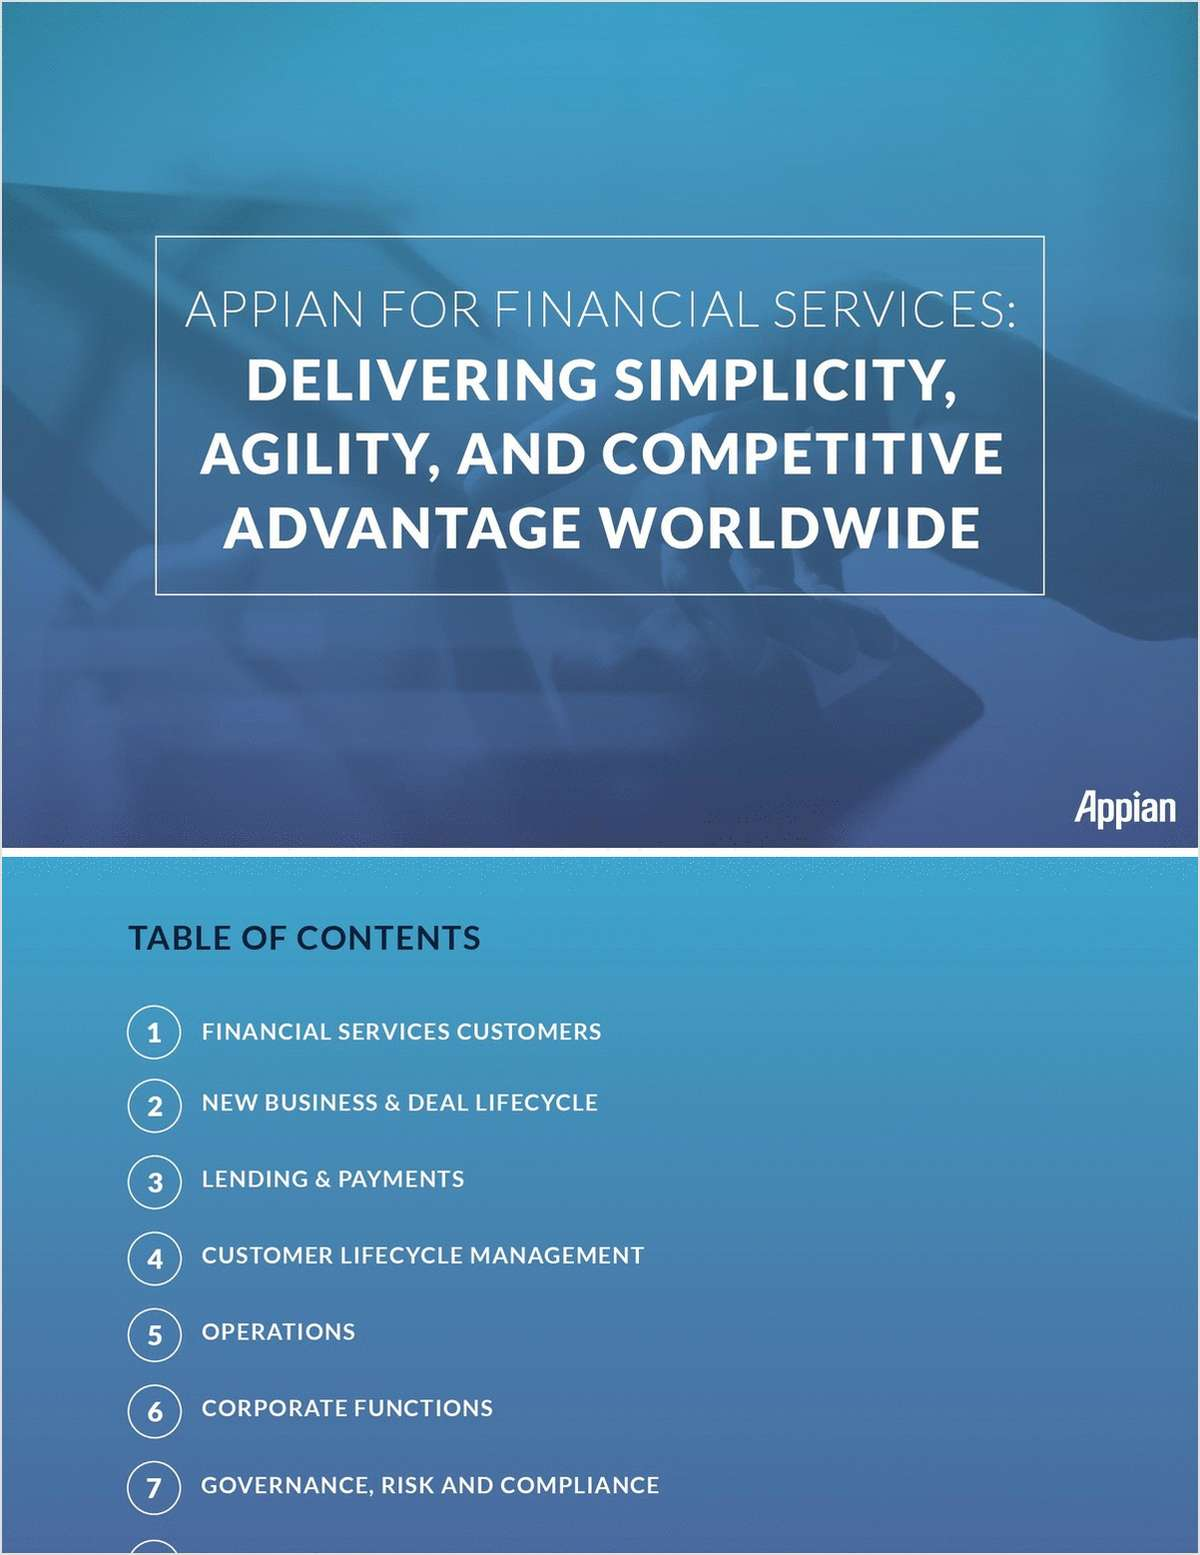 Appian for Financial Services -- Delivering Simplicity, Agility, and Competitive Advantage Worldwide